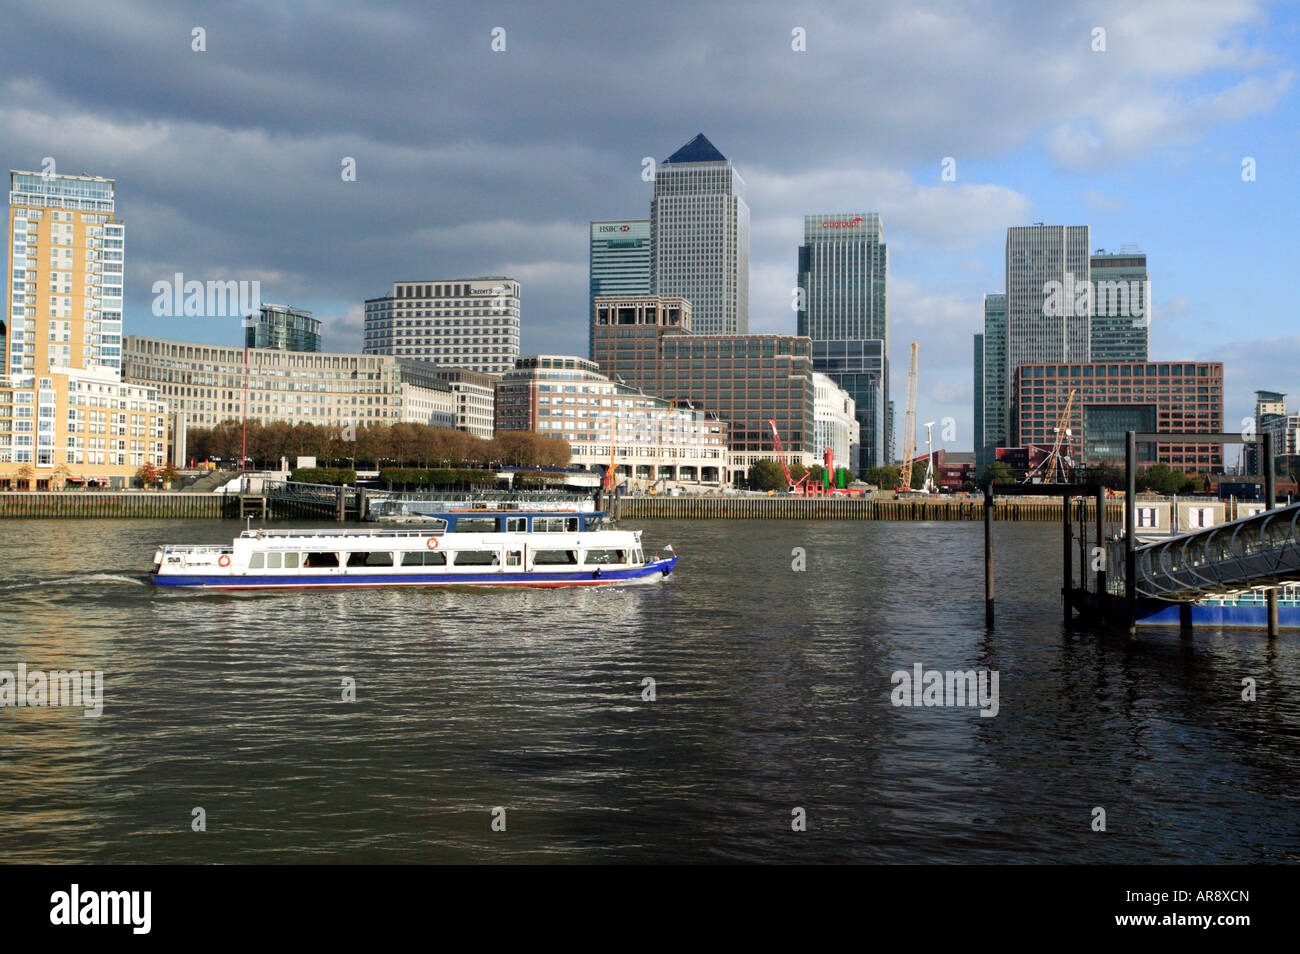 Canary Wharf Business Area from Hilton Pier, Rotherhithe - Stock Image